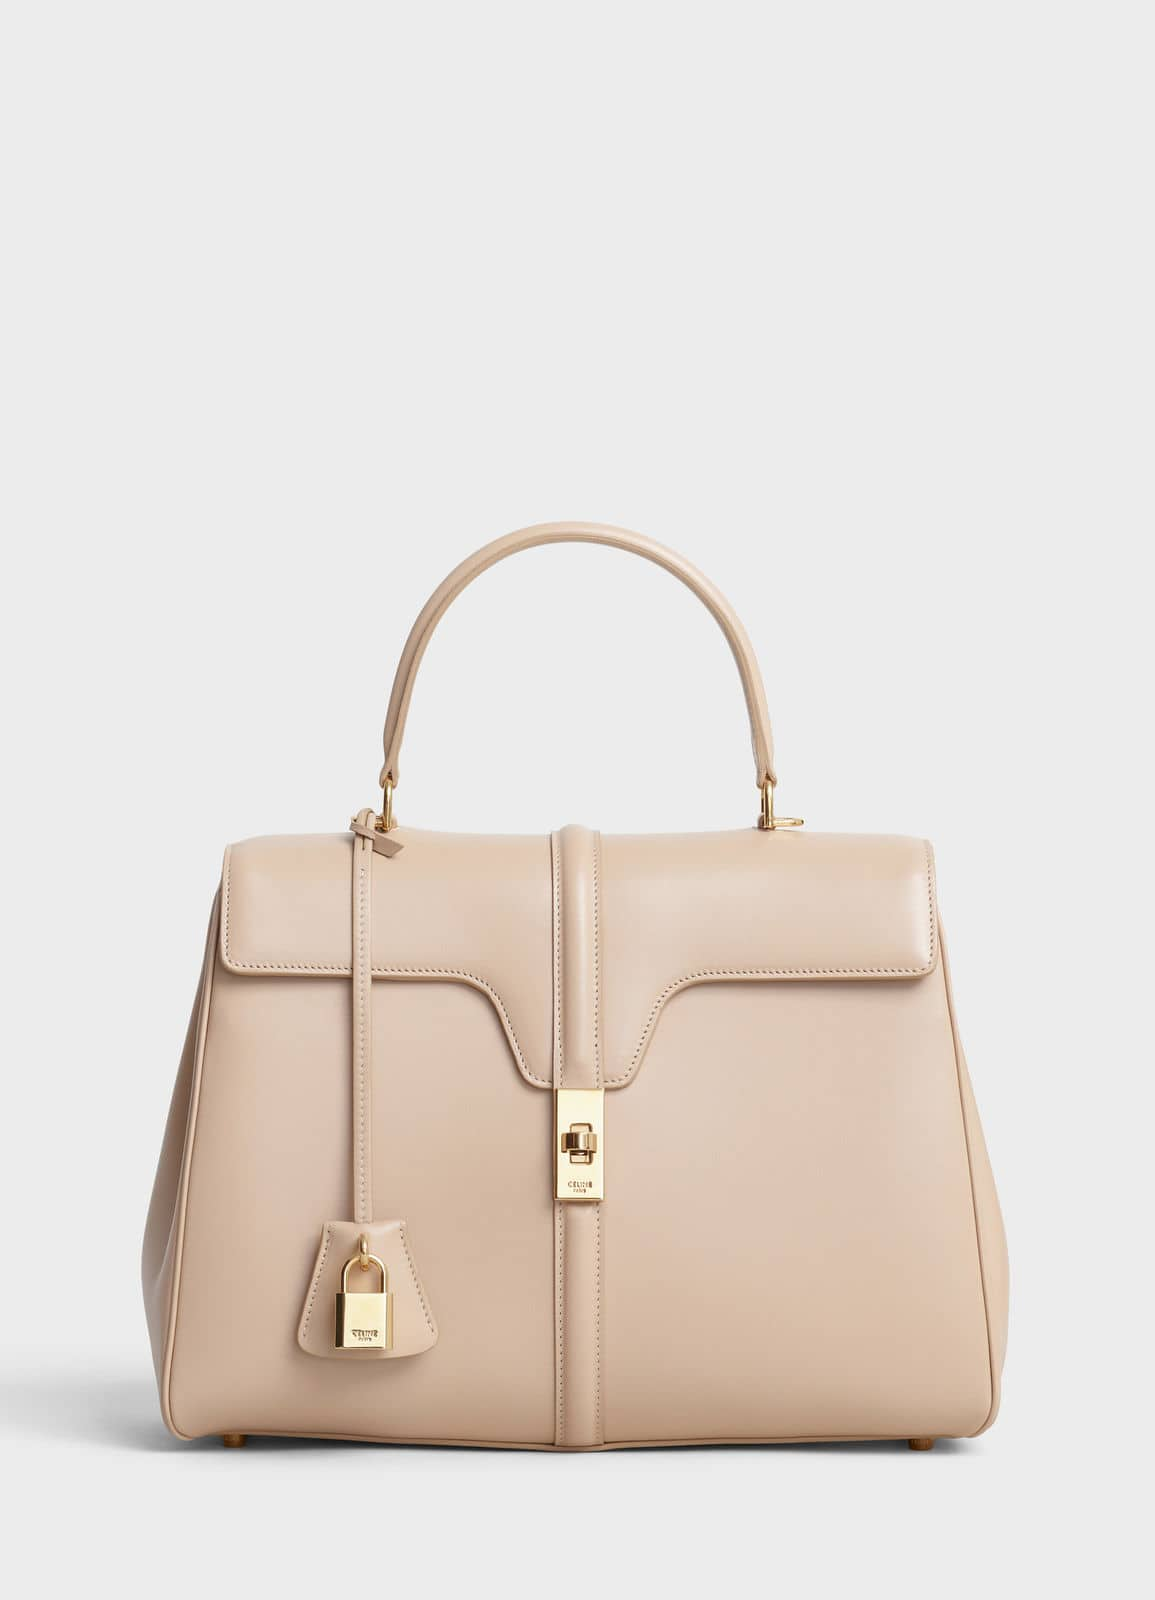 18f3e6ff2a32 Celine Nude Satinated Calfskin Medium 16 Bag